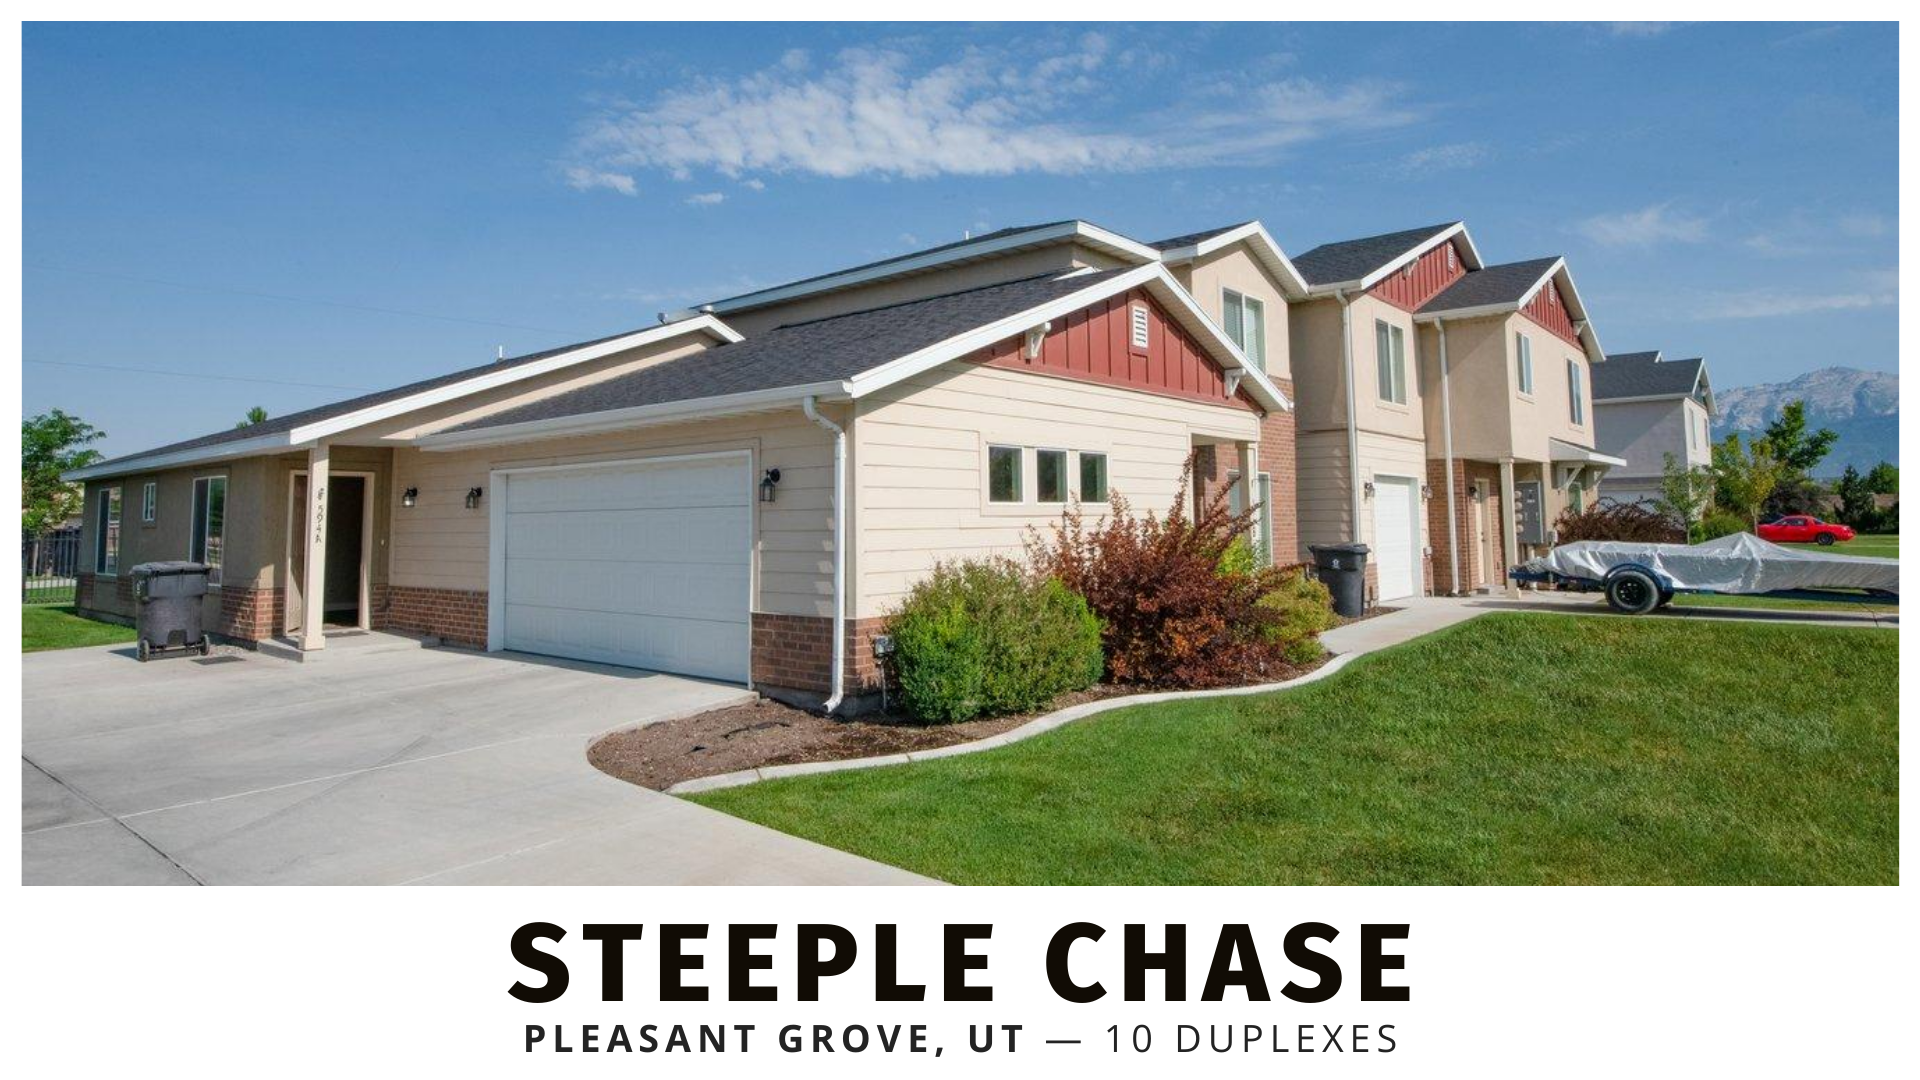 Steeple Chase duplexes in Pleasant Grove, Utah